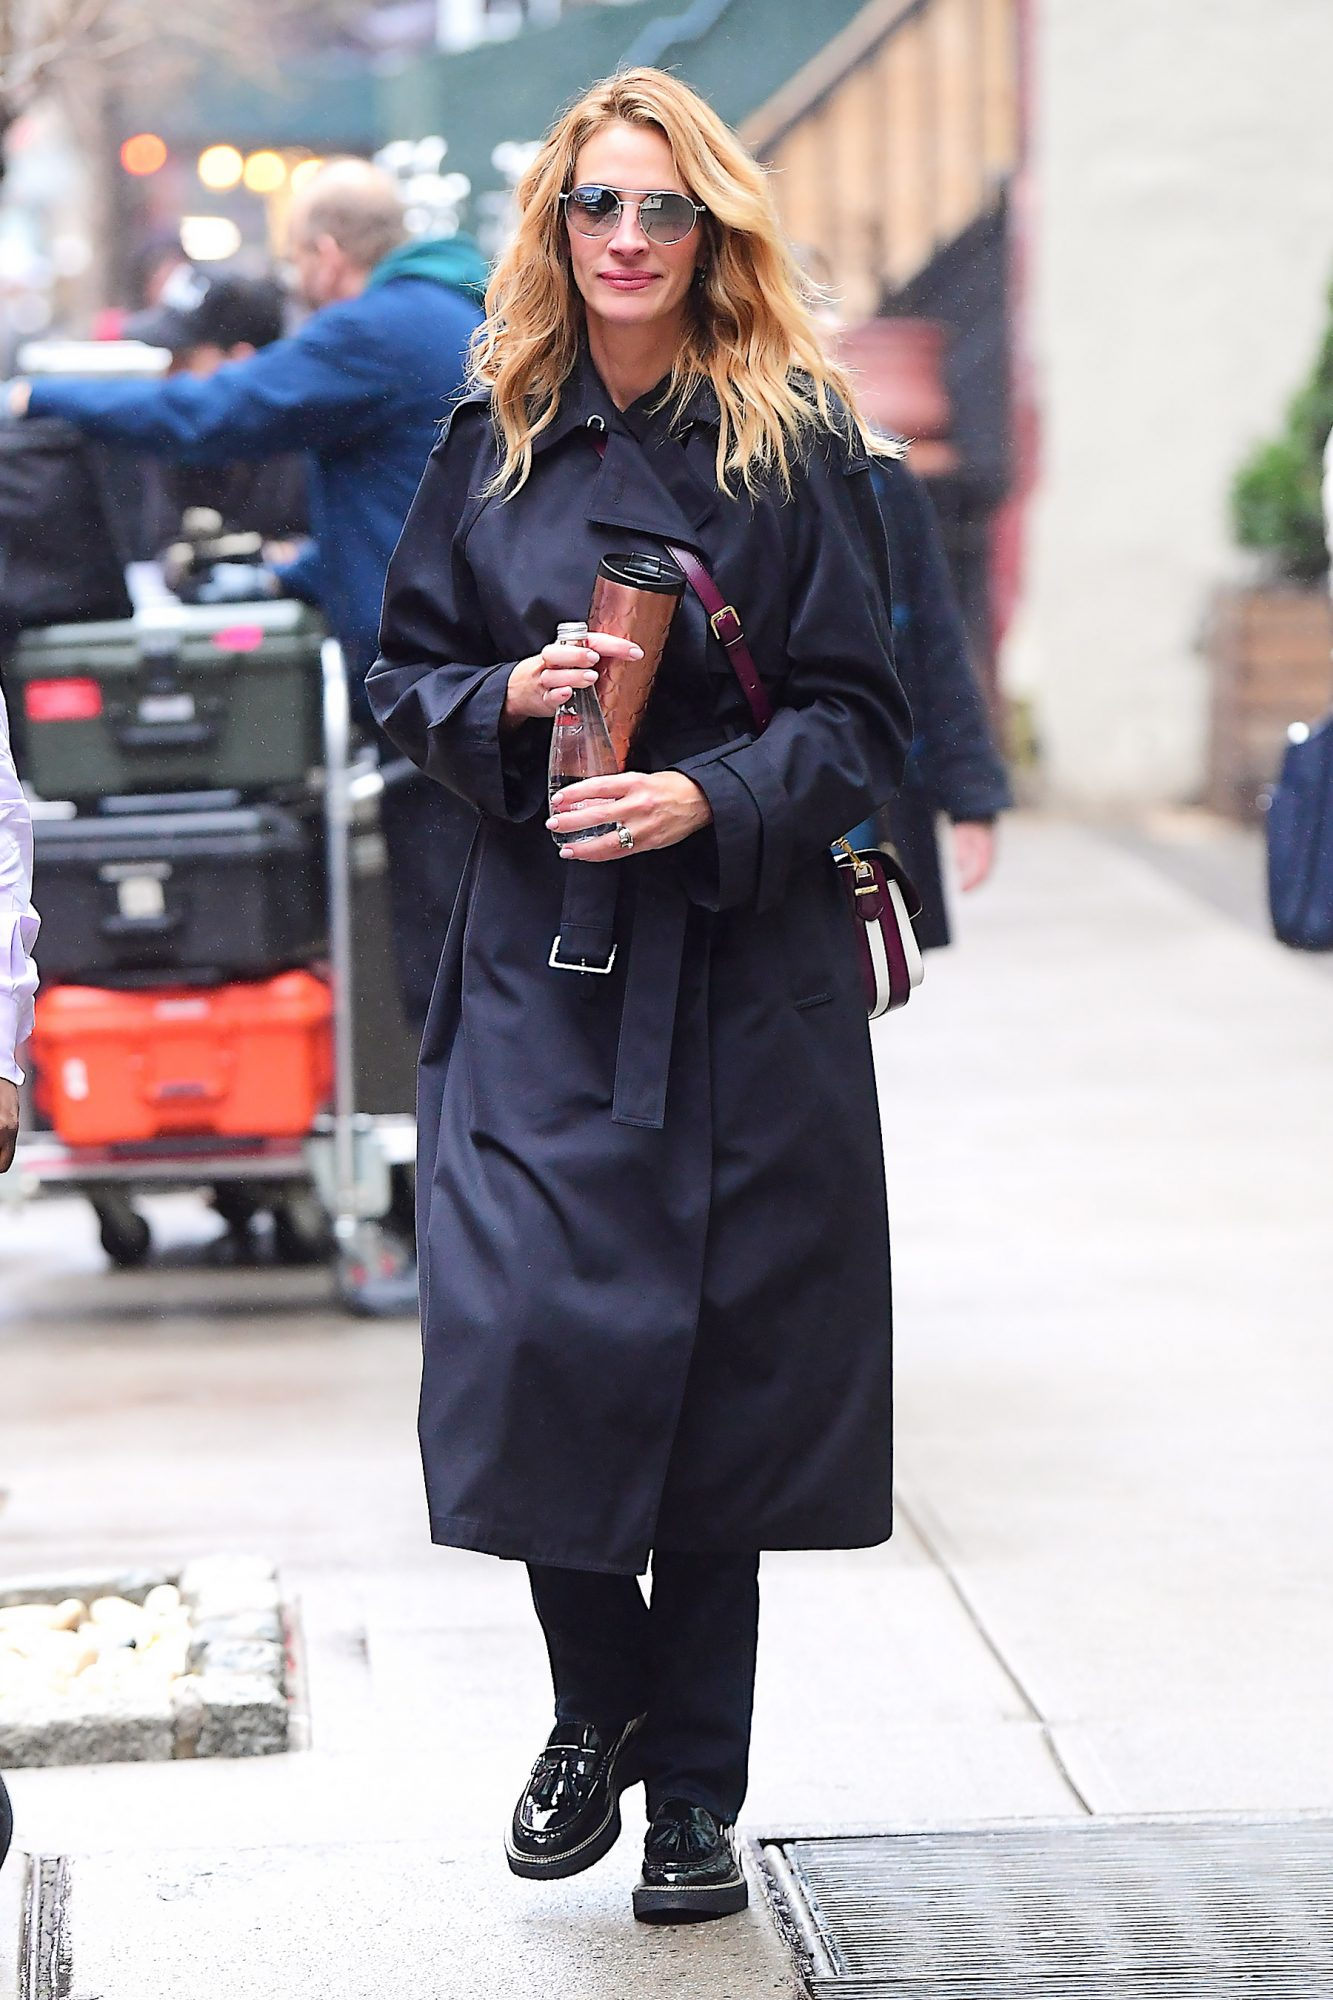 EXCLUSIVE: Julia Roberts has a Big Smile while Enjoying some Retail Therapy in NYC